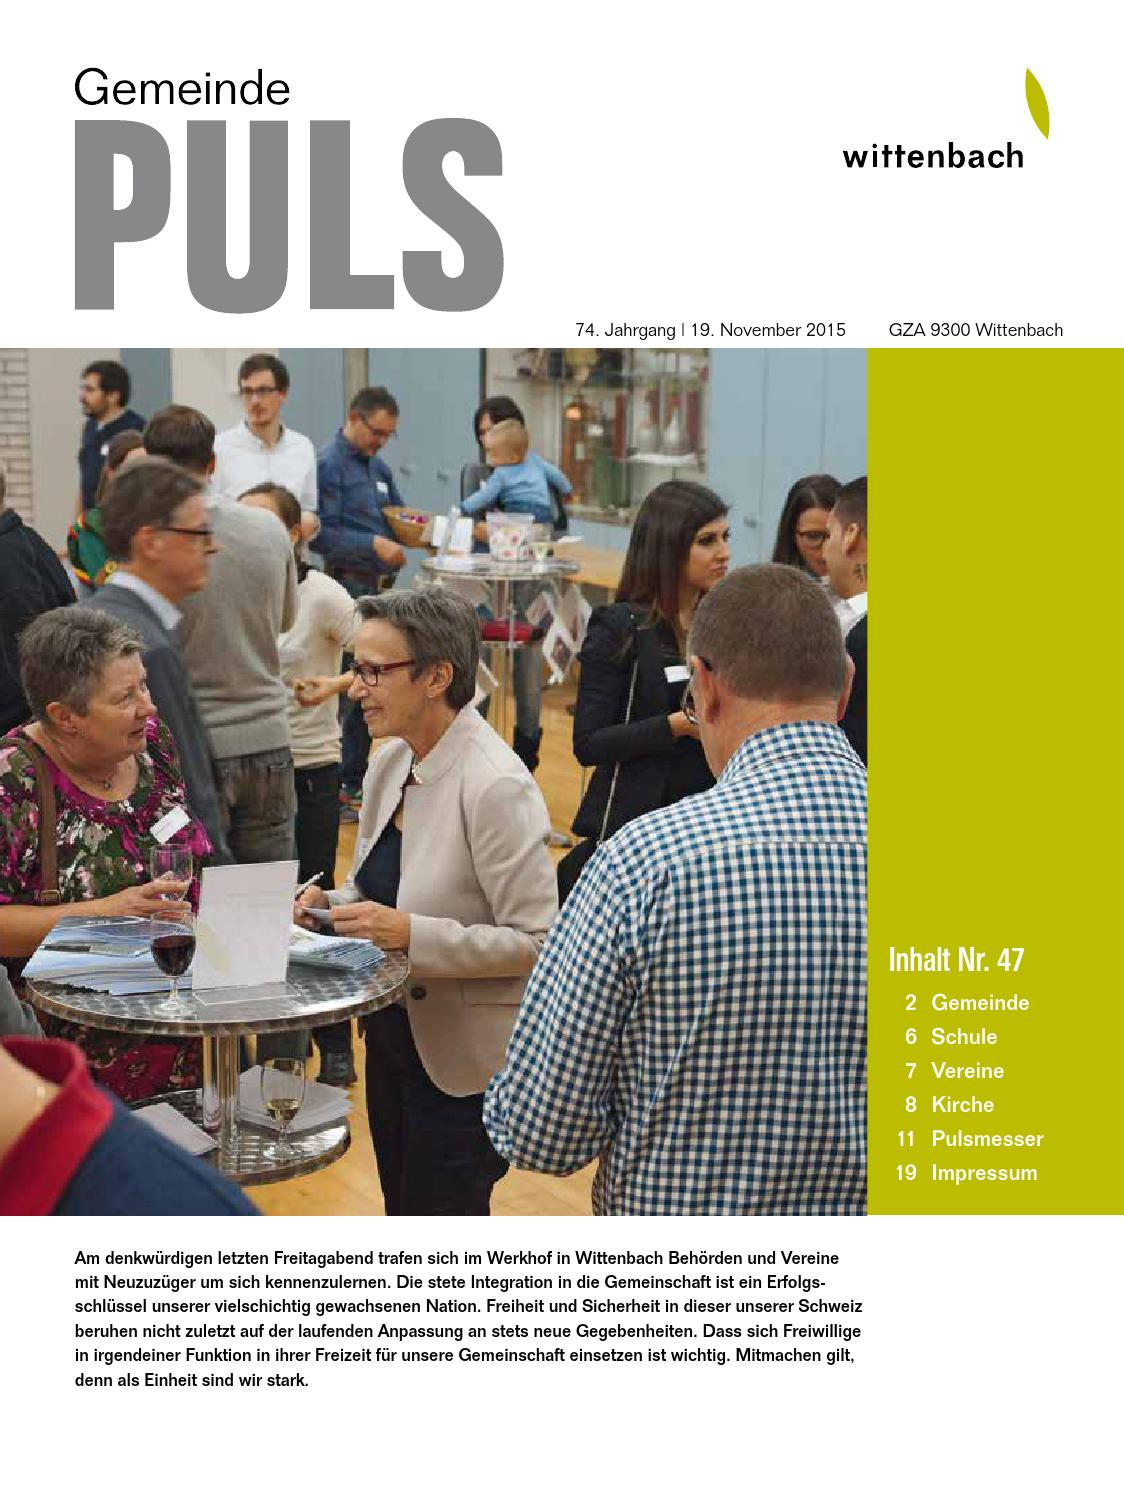 Gemeindepuls 47/2015 by Maxsolution - issuu